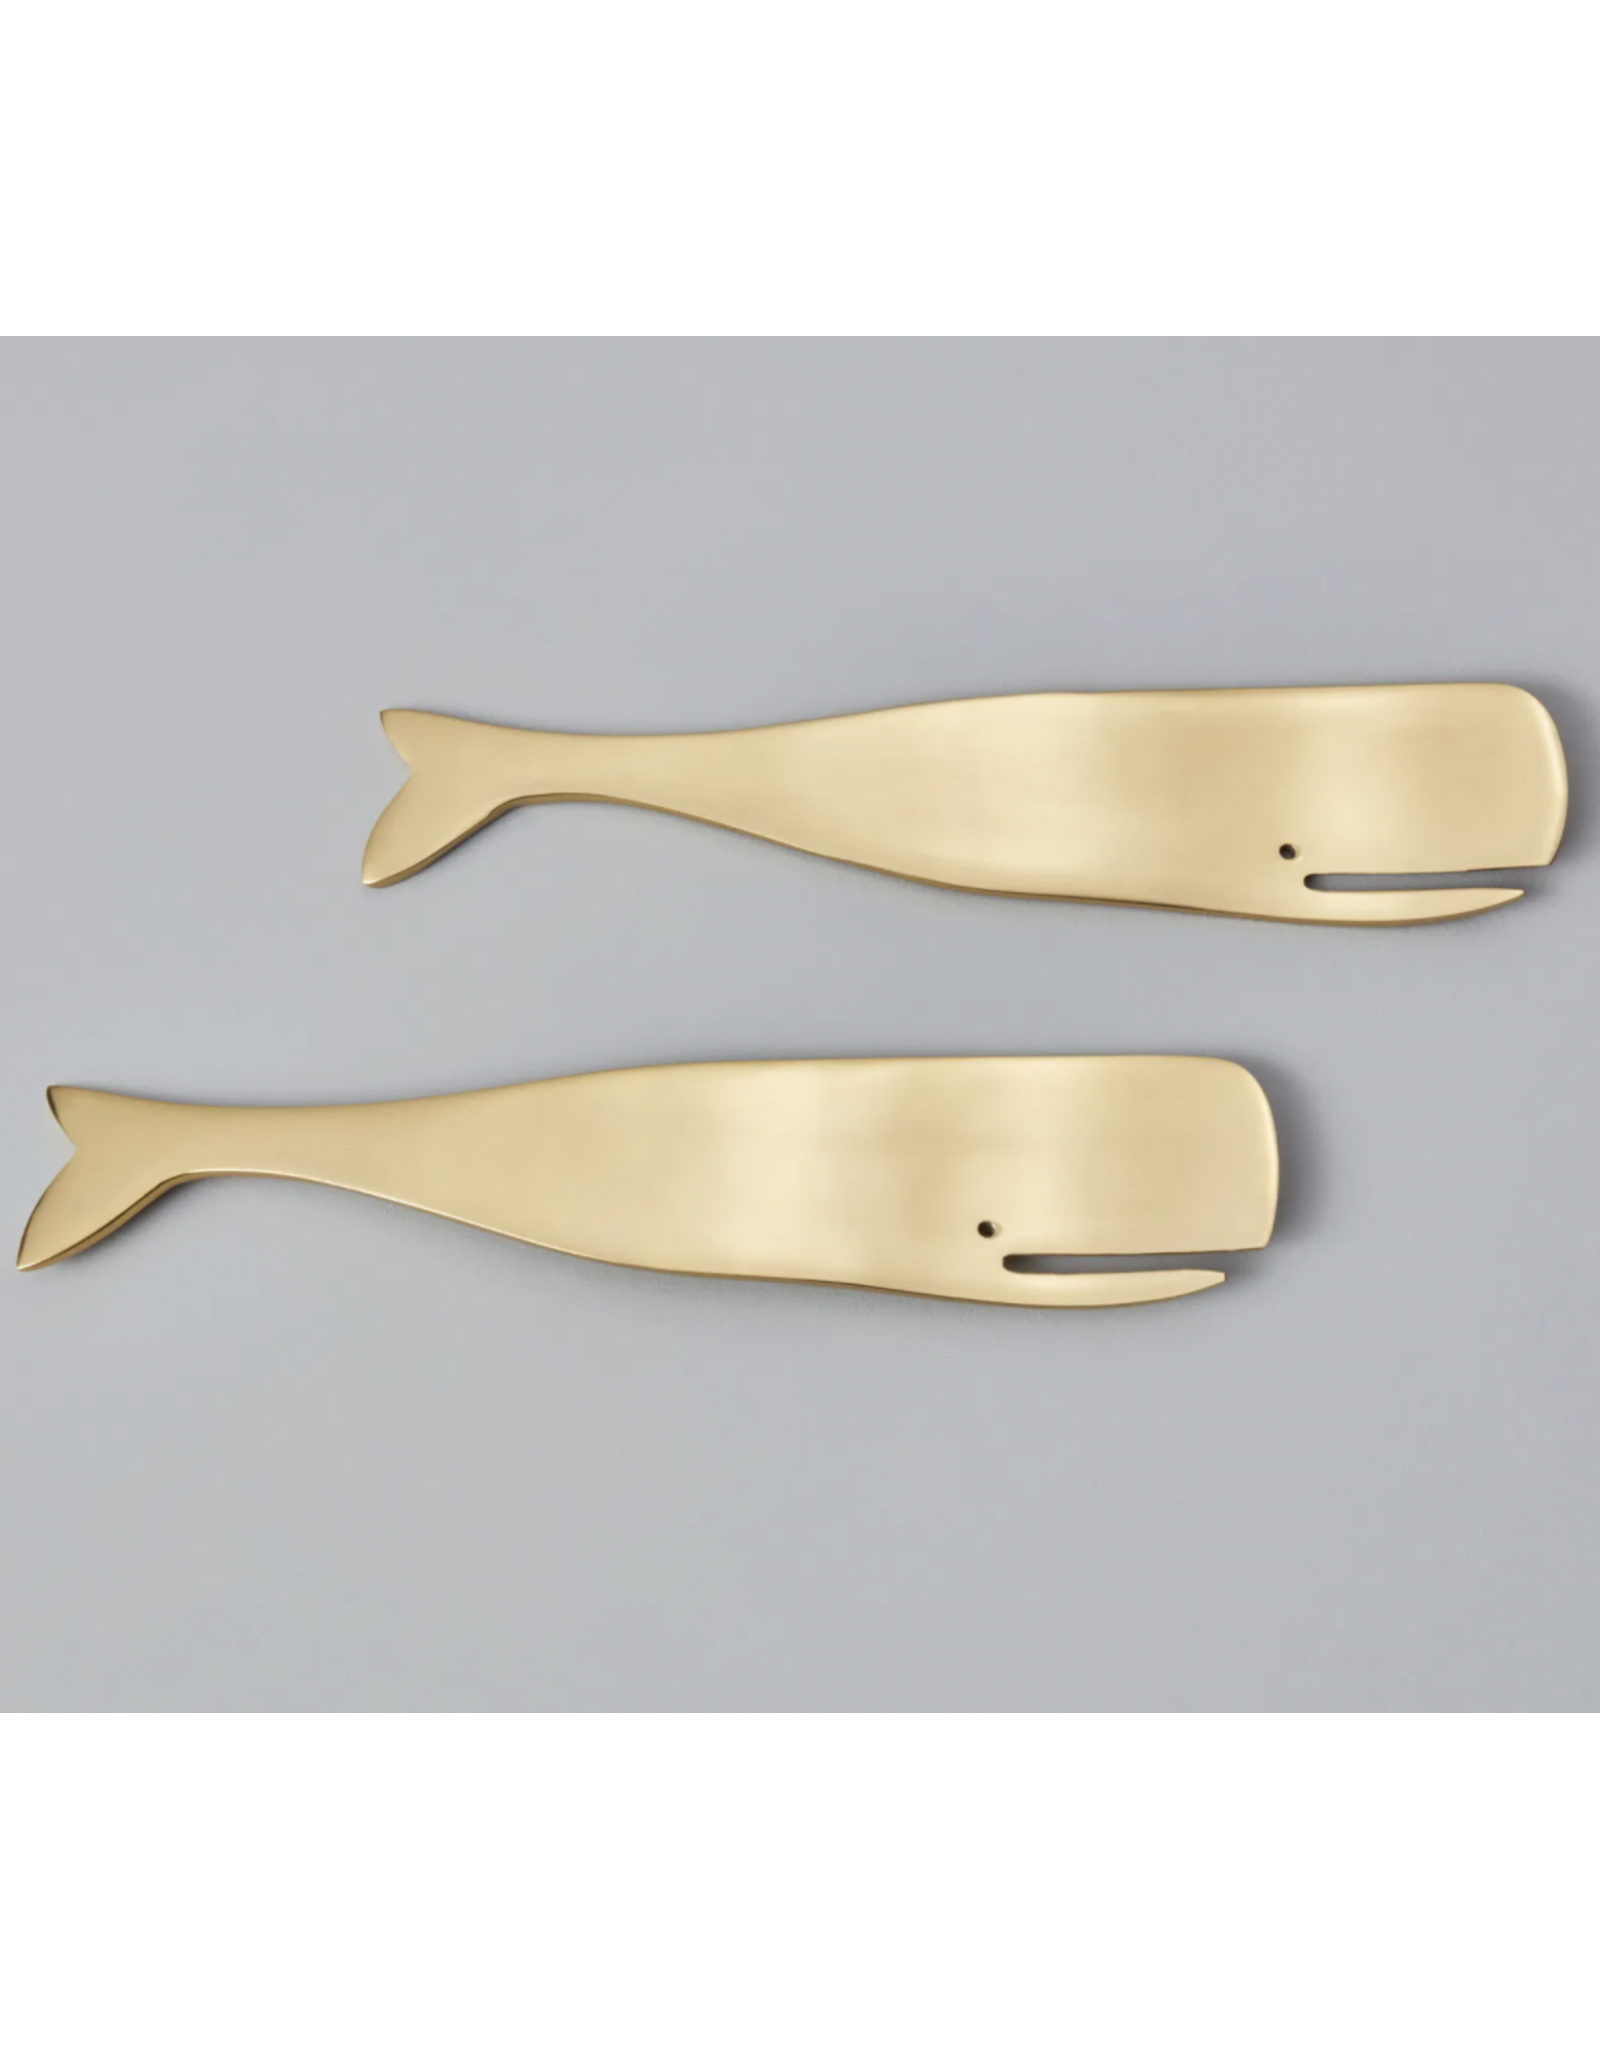 Whale Serving Set in Gold